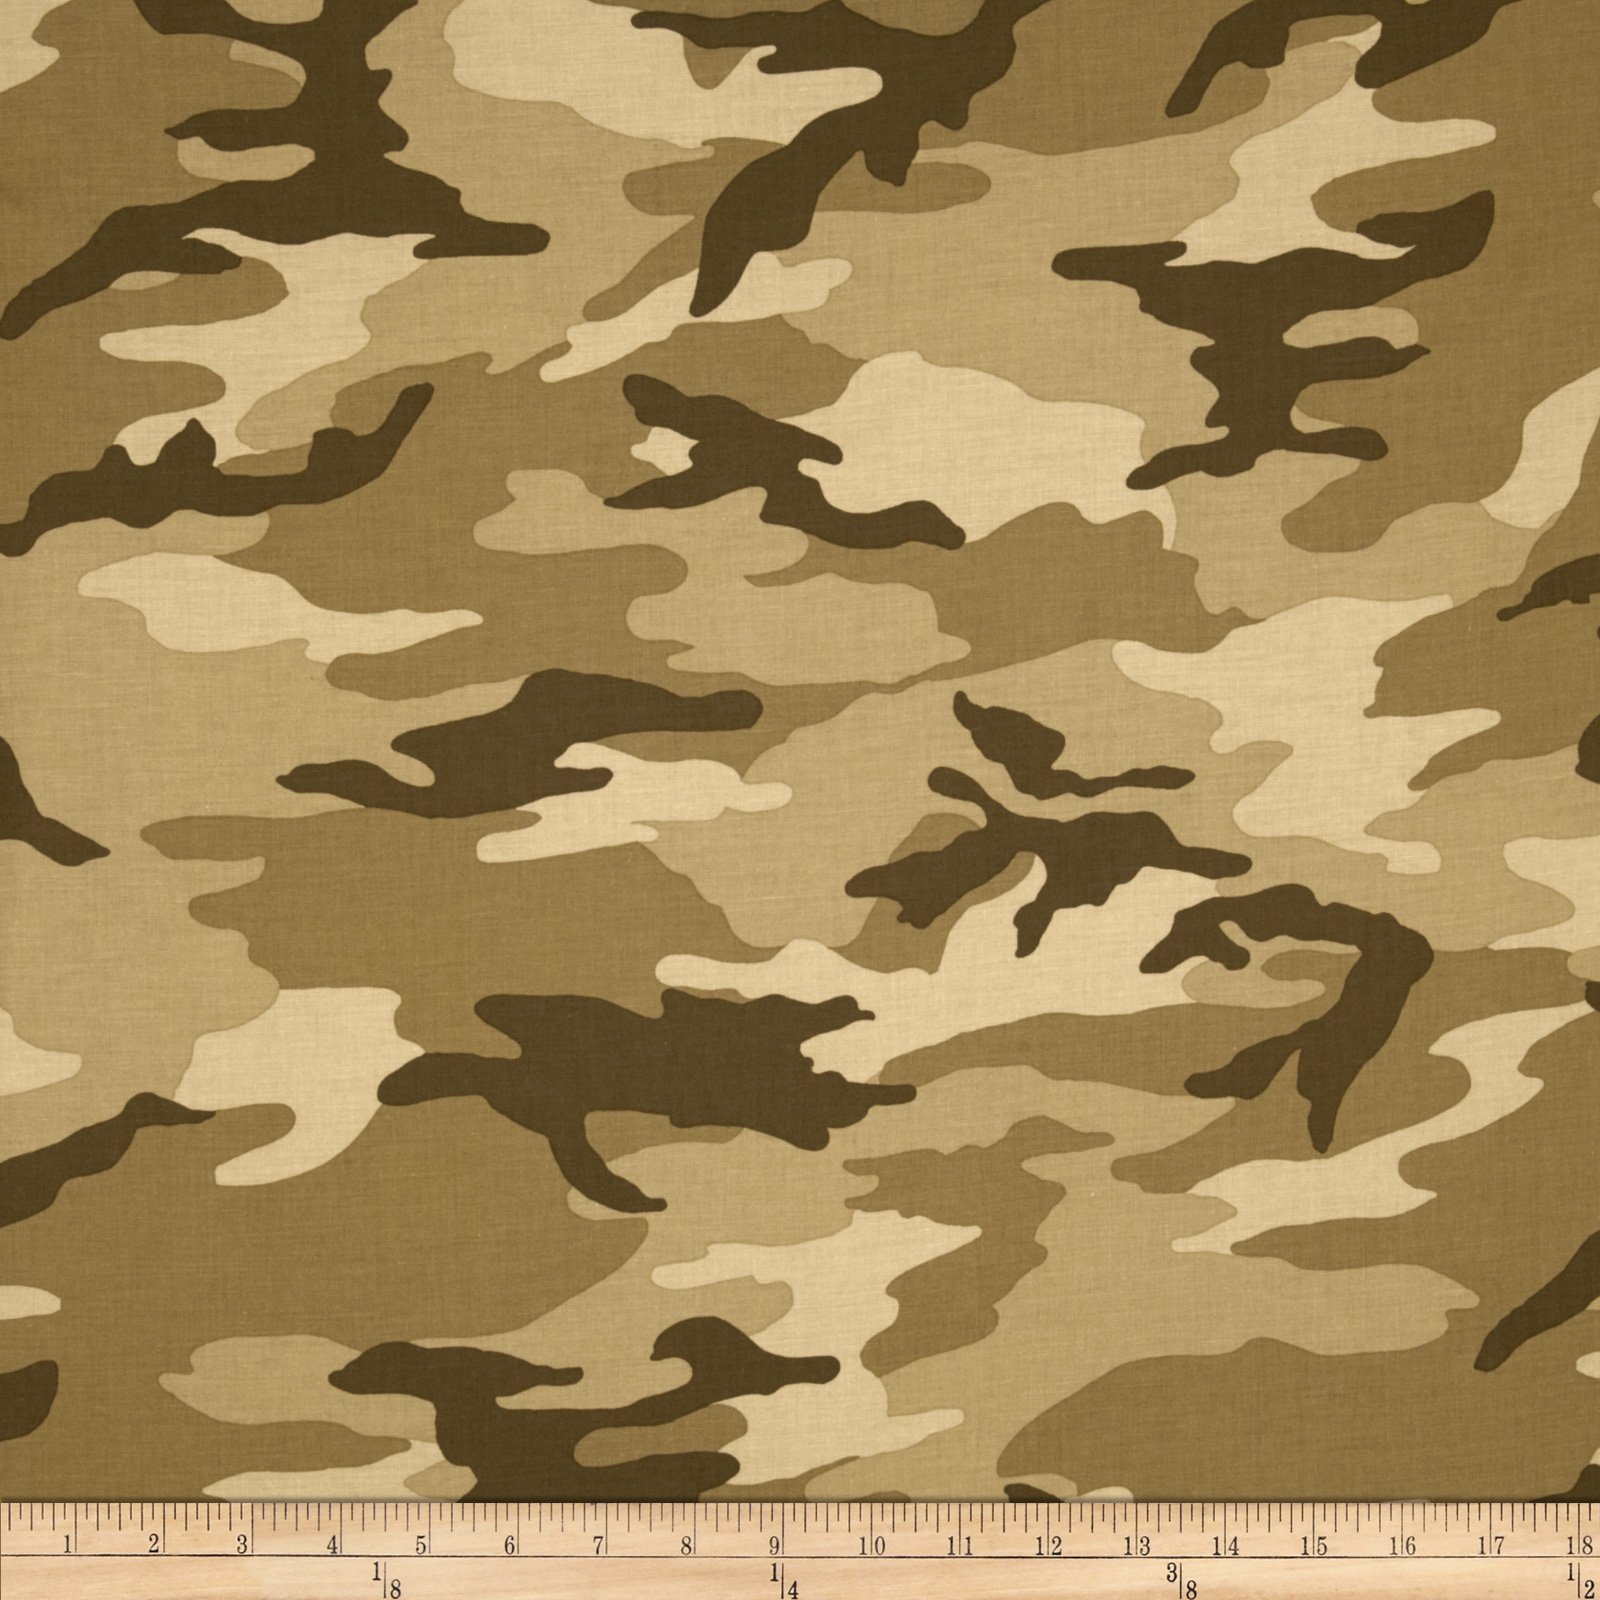 Dutch DPM Camo G-tex Parka,Military Mart MilitaryMart Hoods UK Army Military combat surplus supplies wholesale clothing equipment accessories DPM Flecktarn fleck tarn 4/4(1).